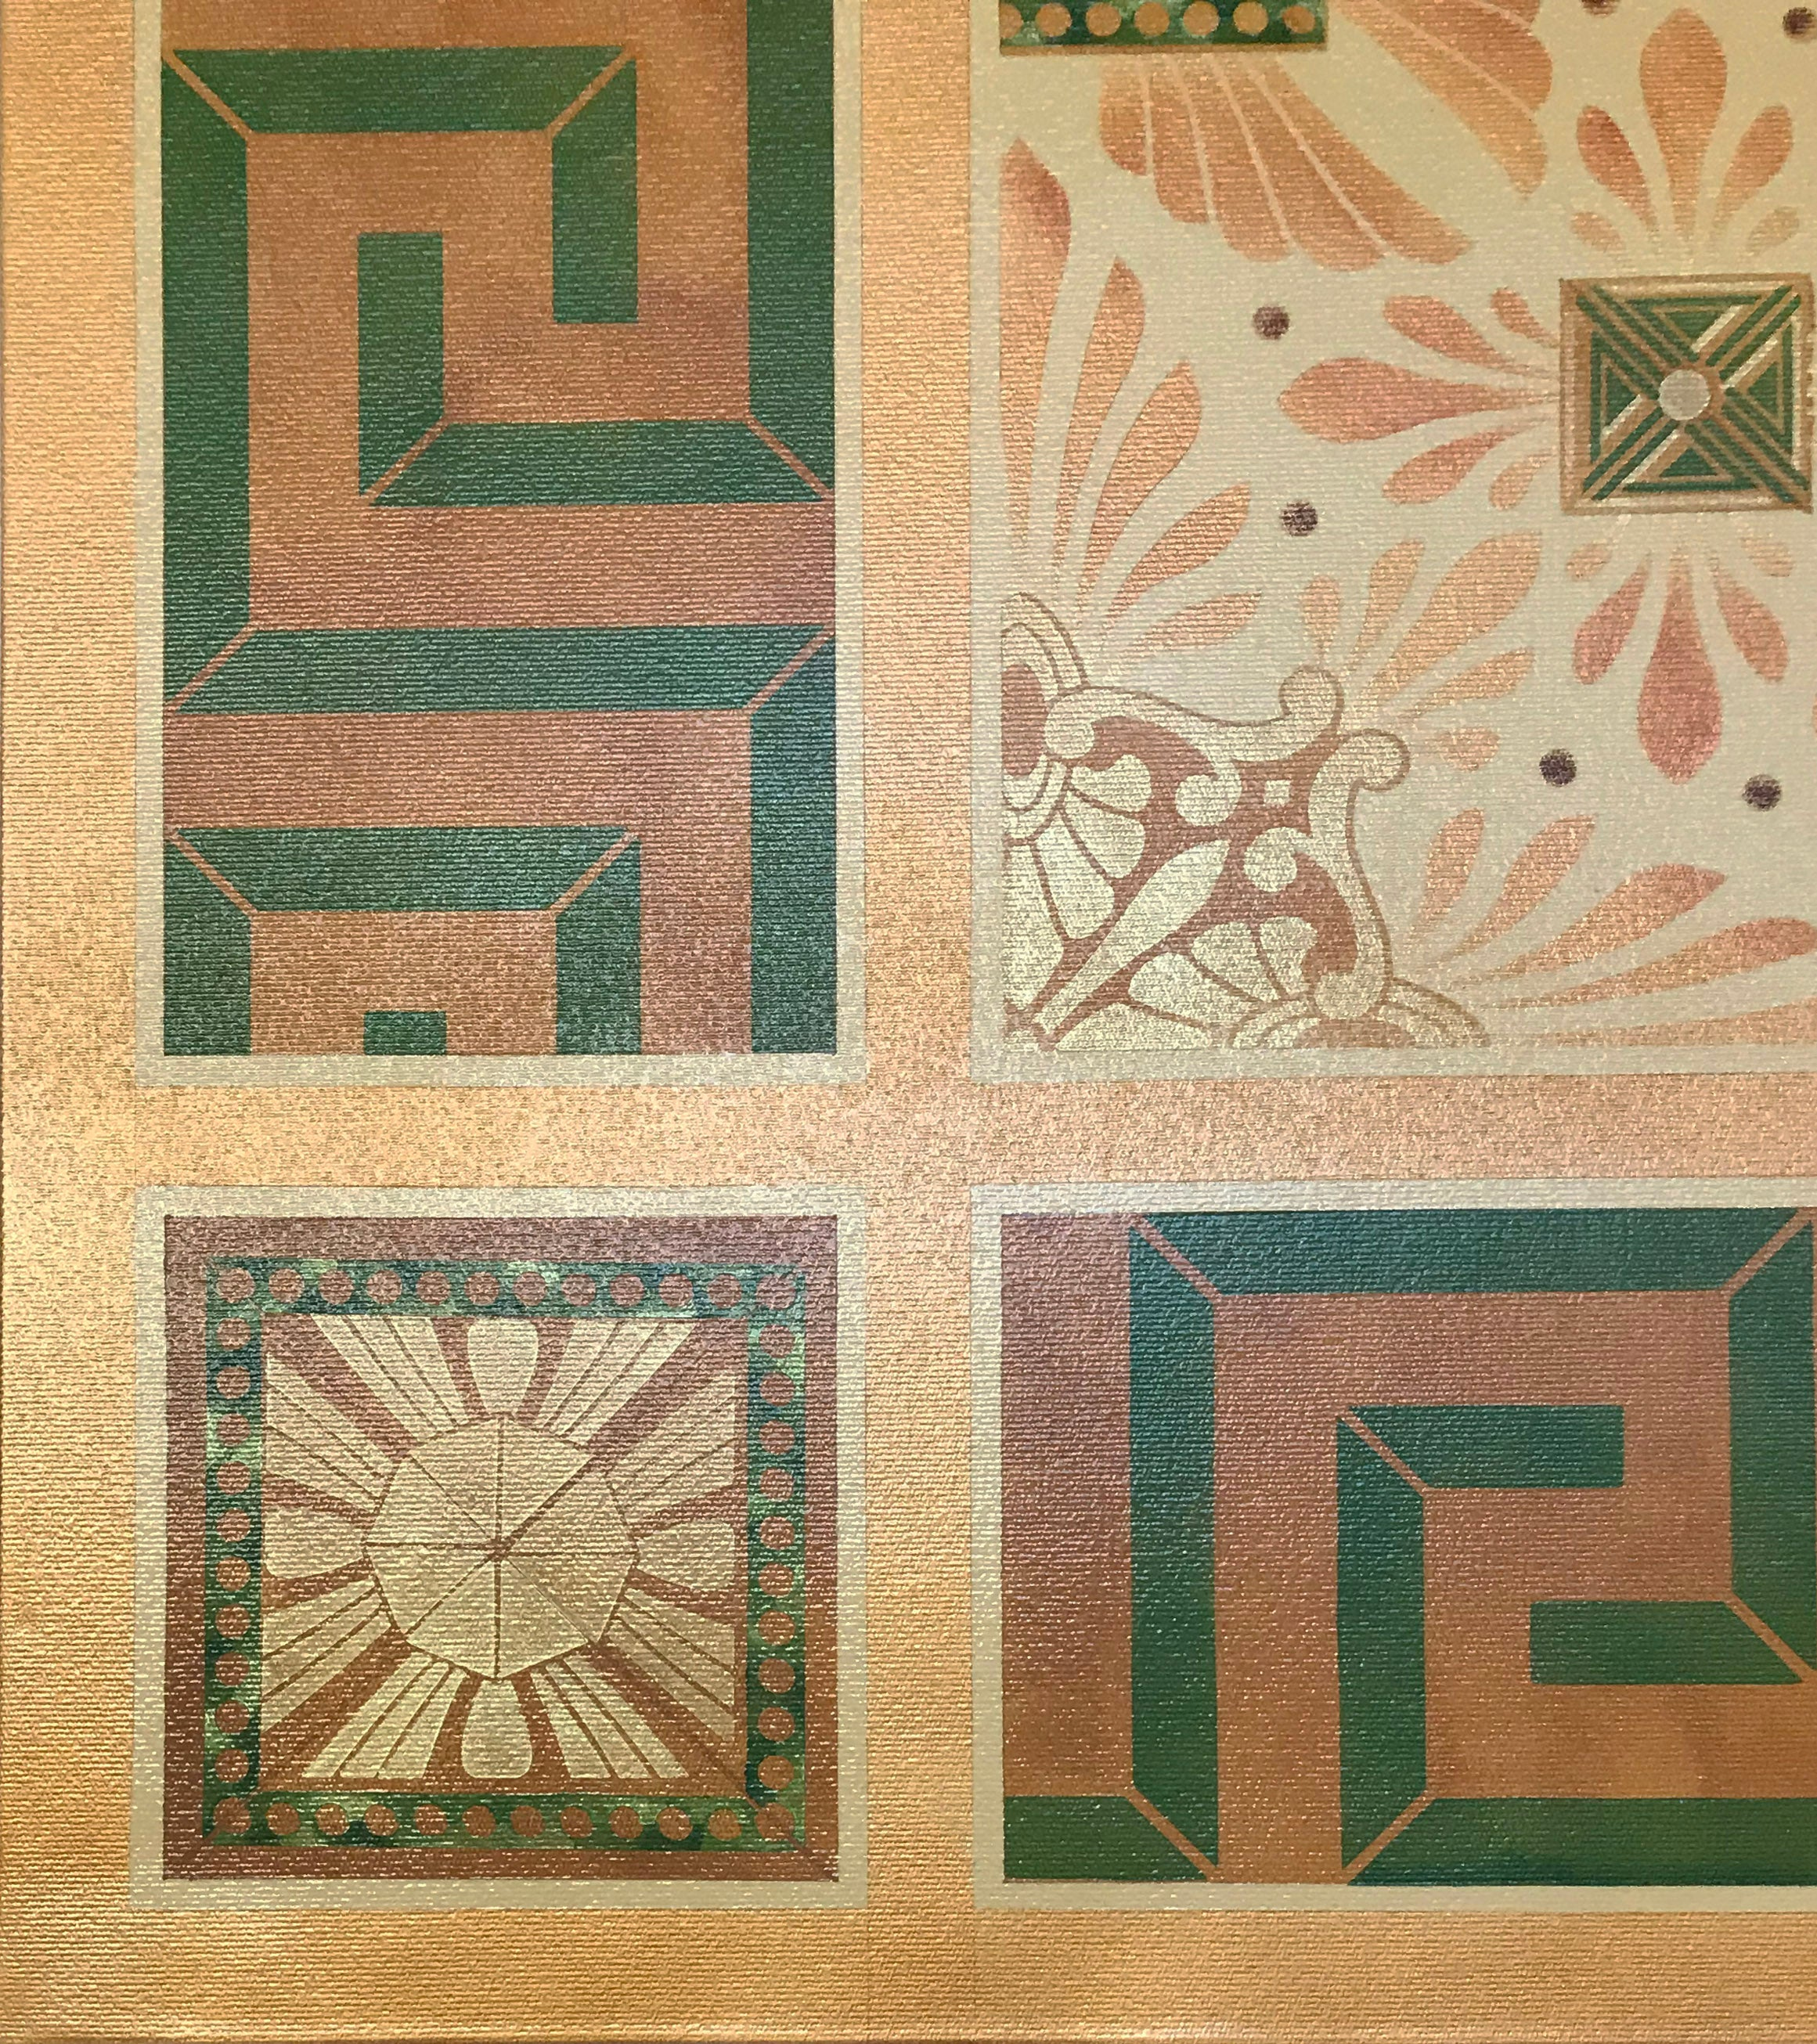 Close up corner image of this floorcloth, based on a design by Christopher Dresser.